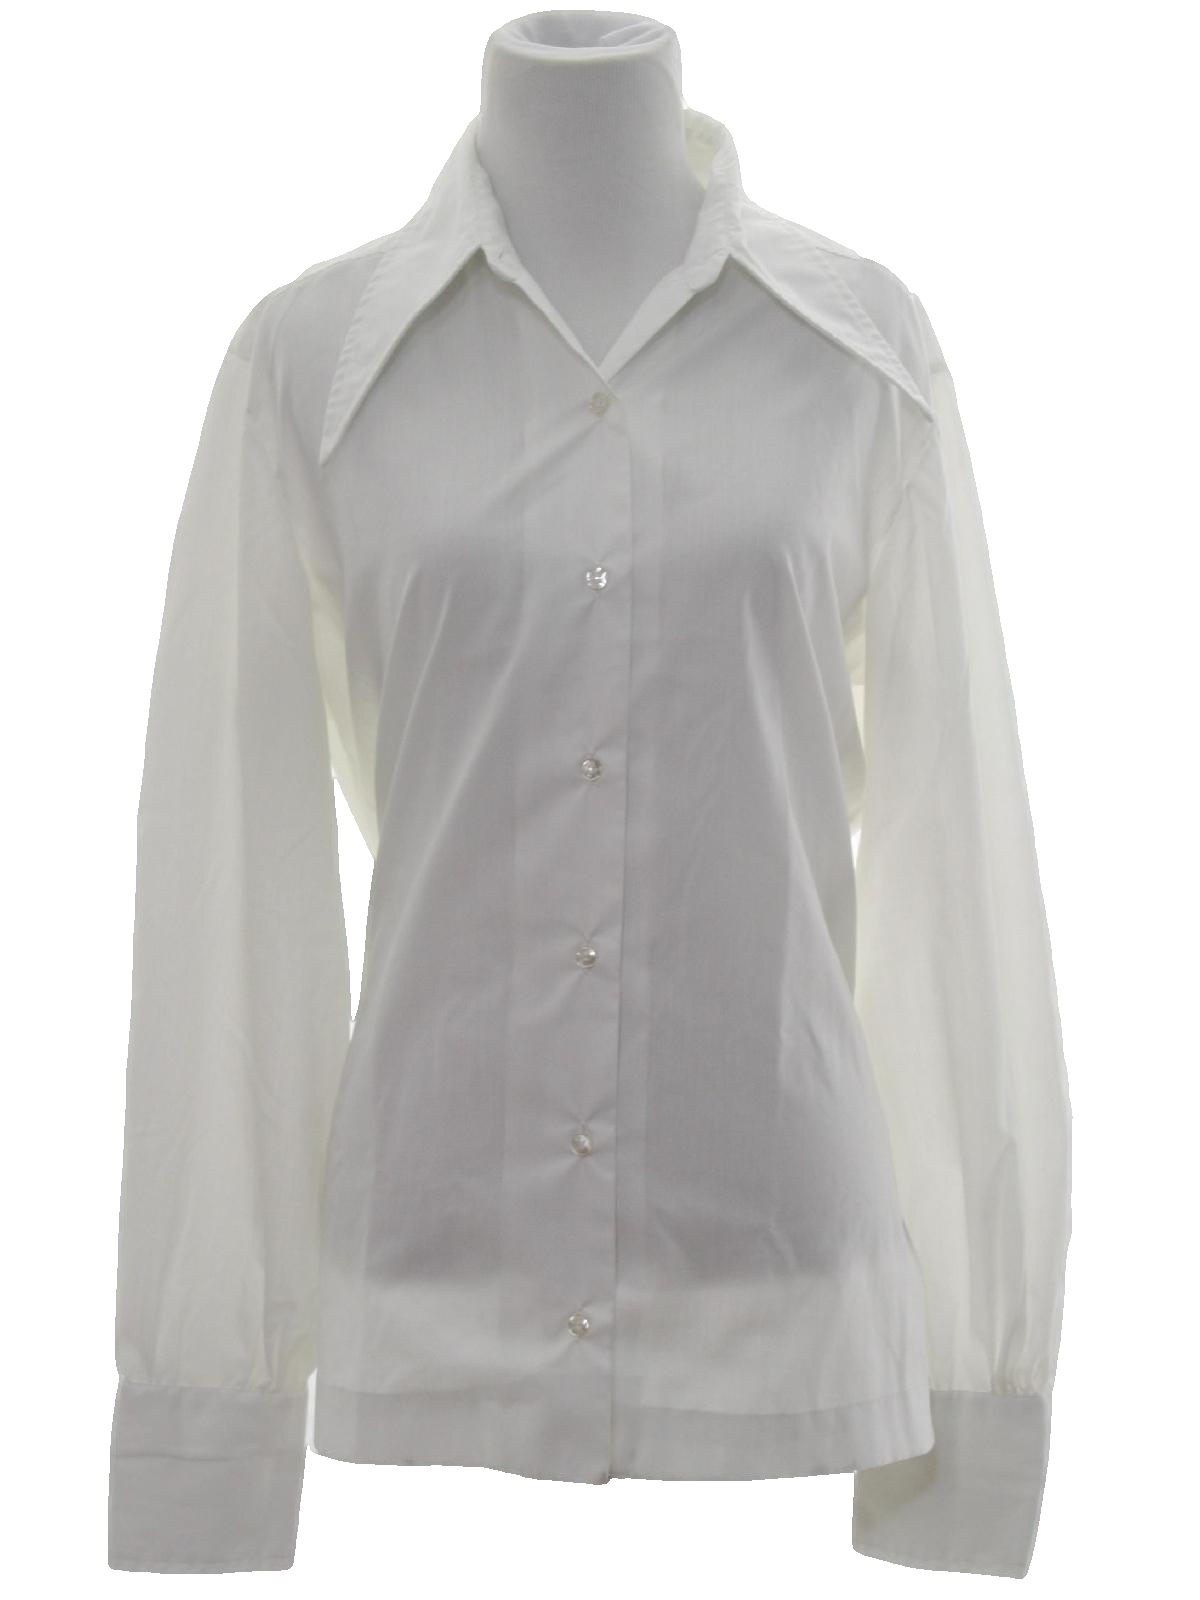 Retro 70s shirt dearborn 70s dearborn womens white for Solid color button up shirts